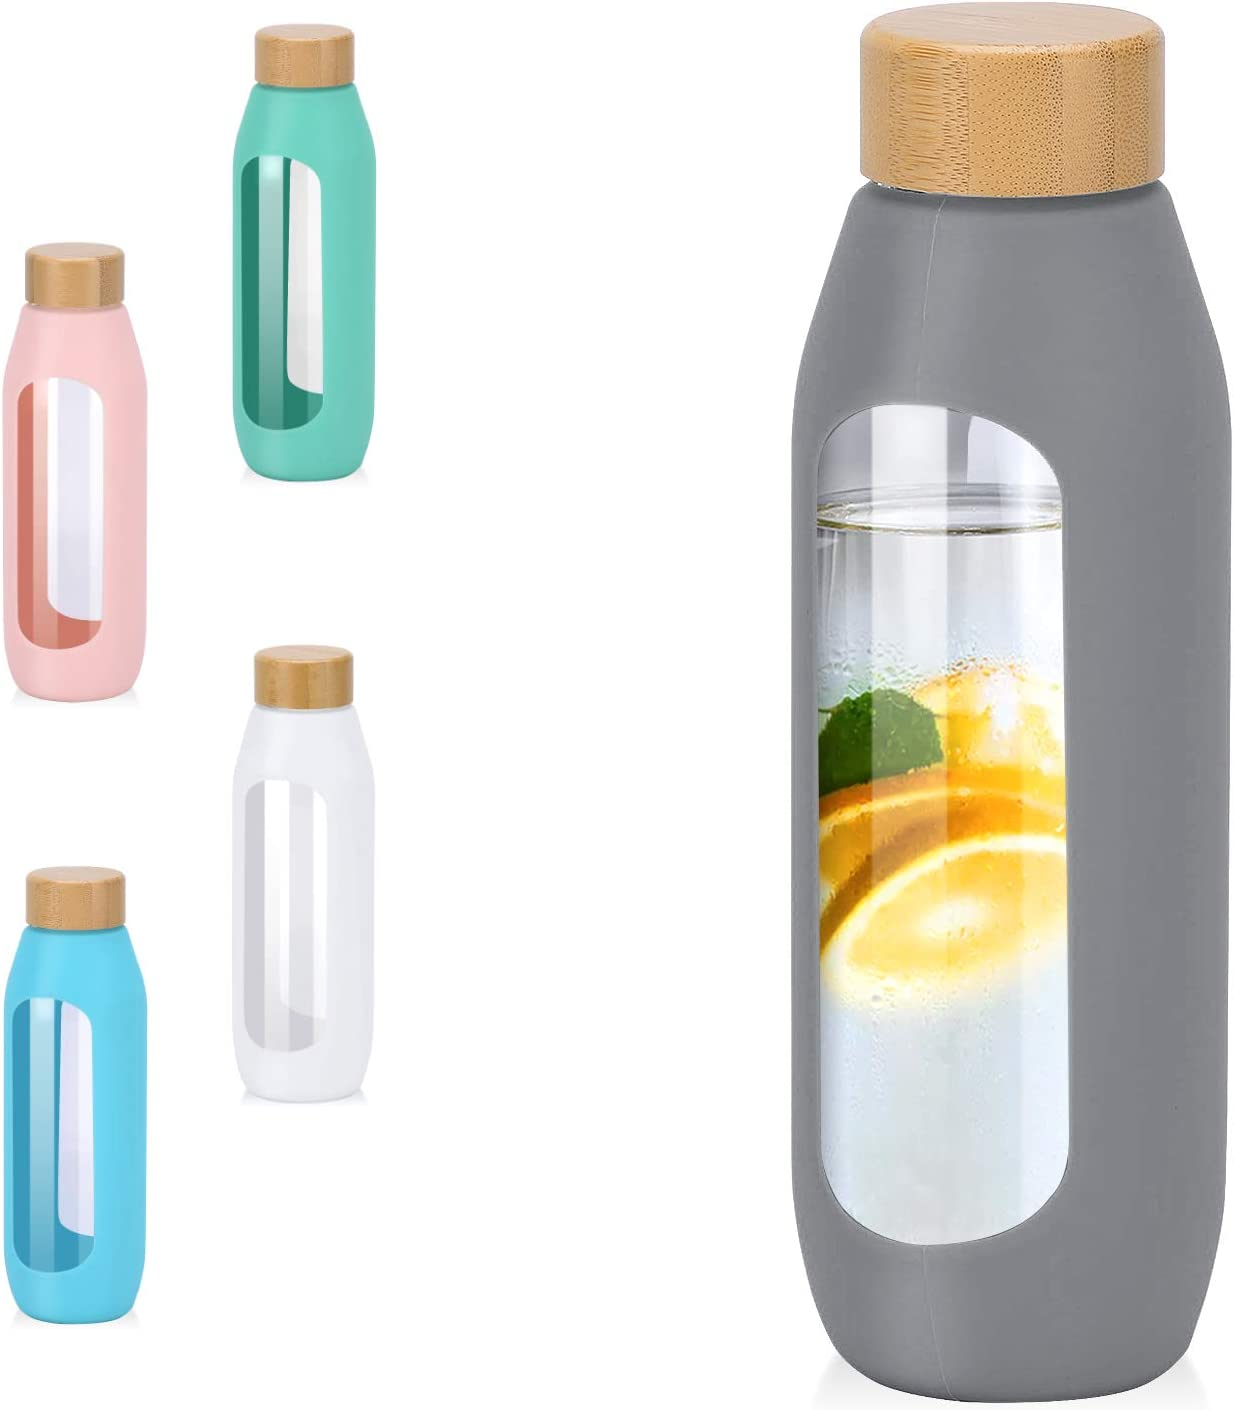 YIXUN 20oz Glass Water Bottle with Silicone Sleeve Leak Proof Lid Fit Cup Holder Ideal for Office Home